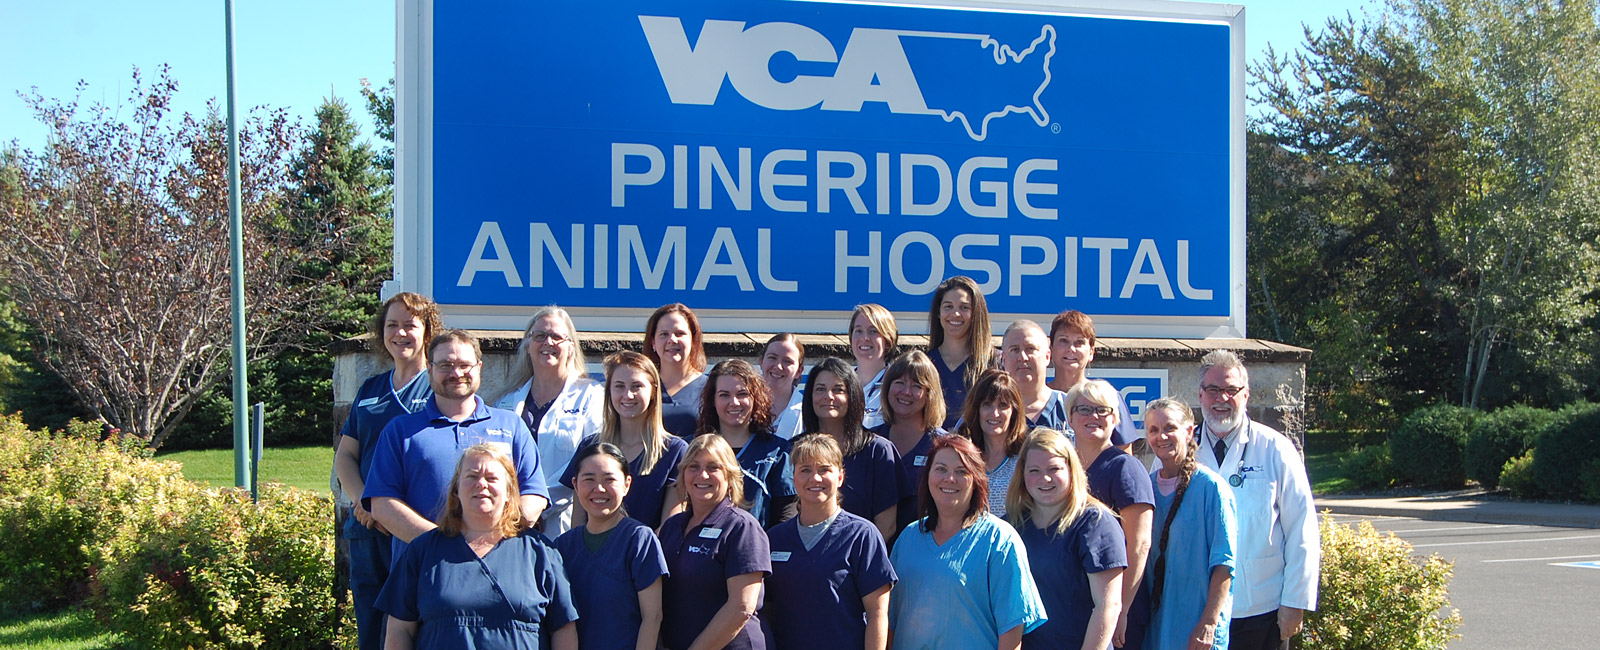 Team Picture of VCA Pineridge Animal Hospital